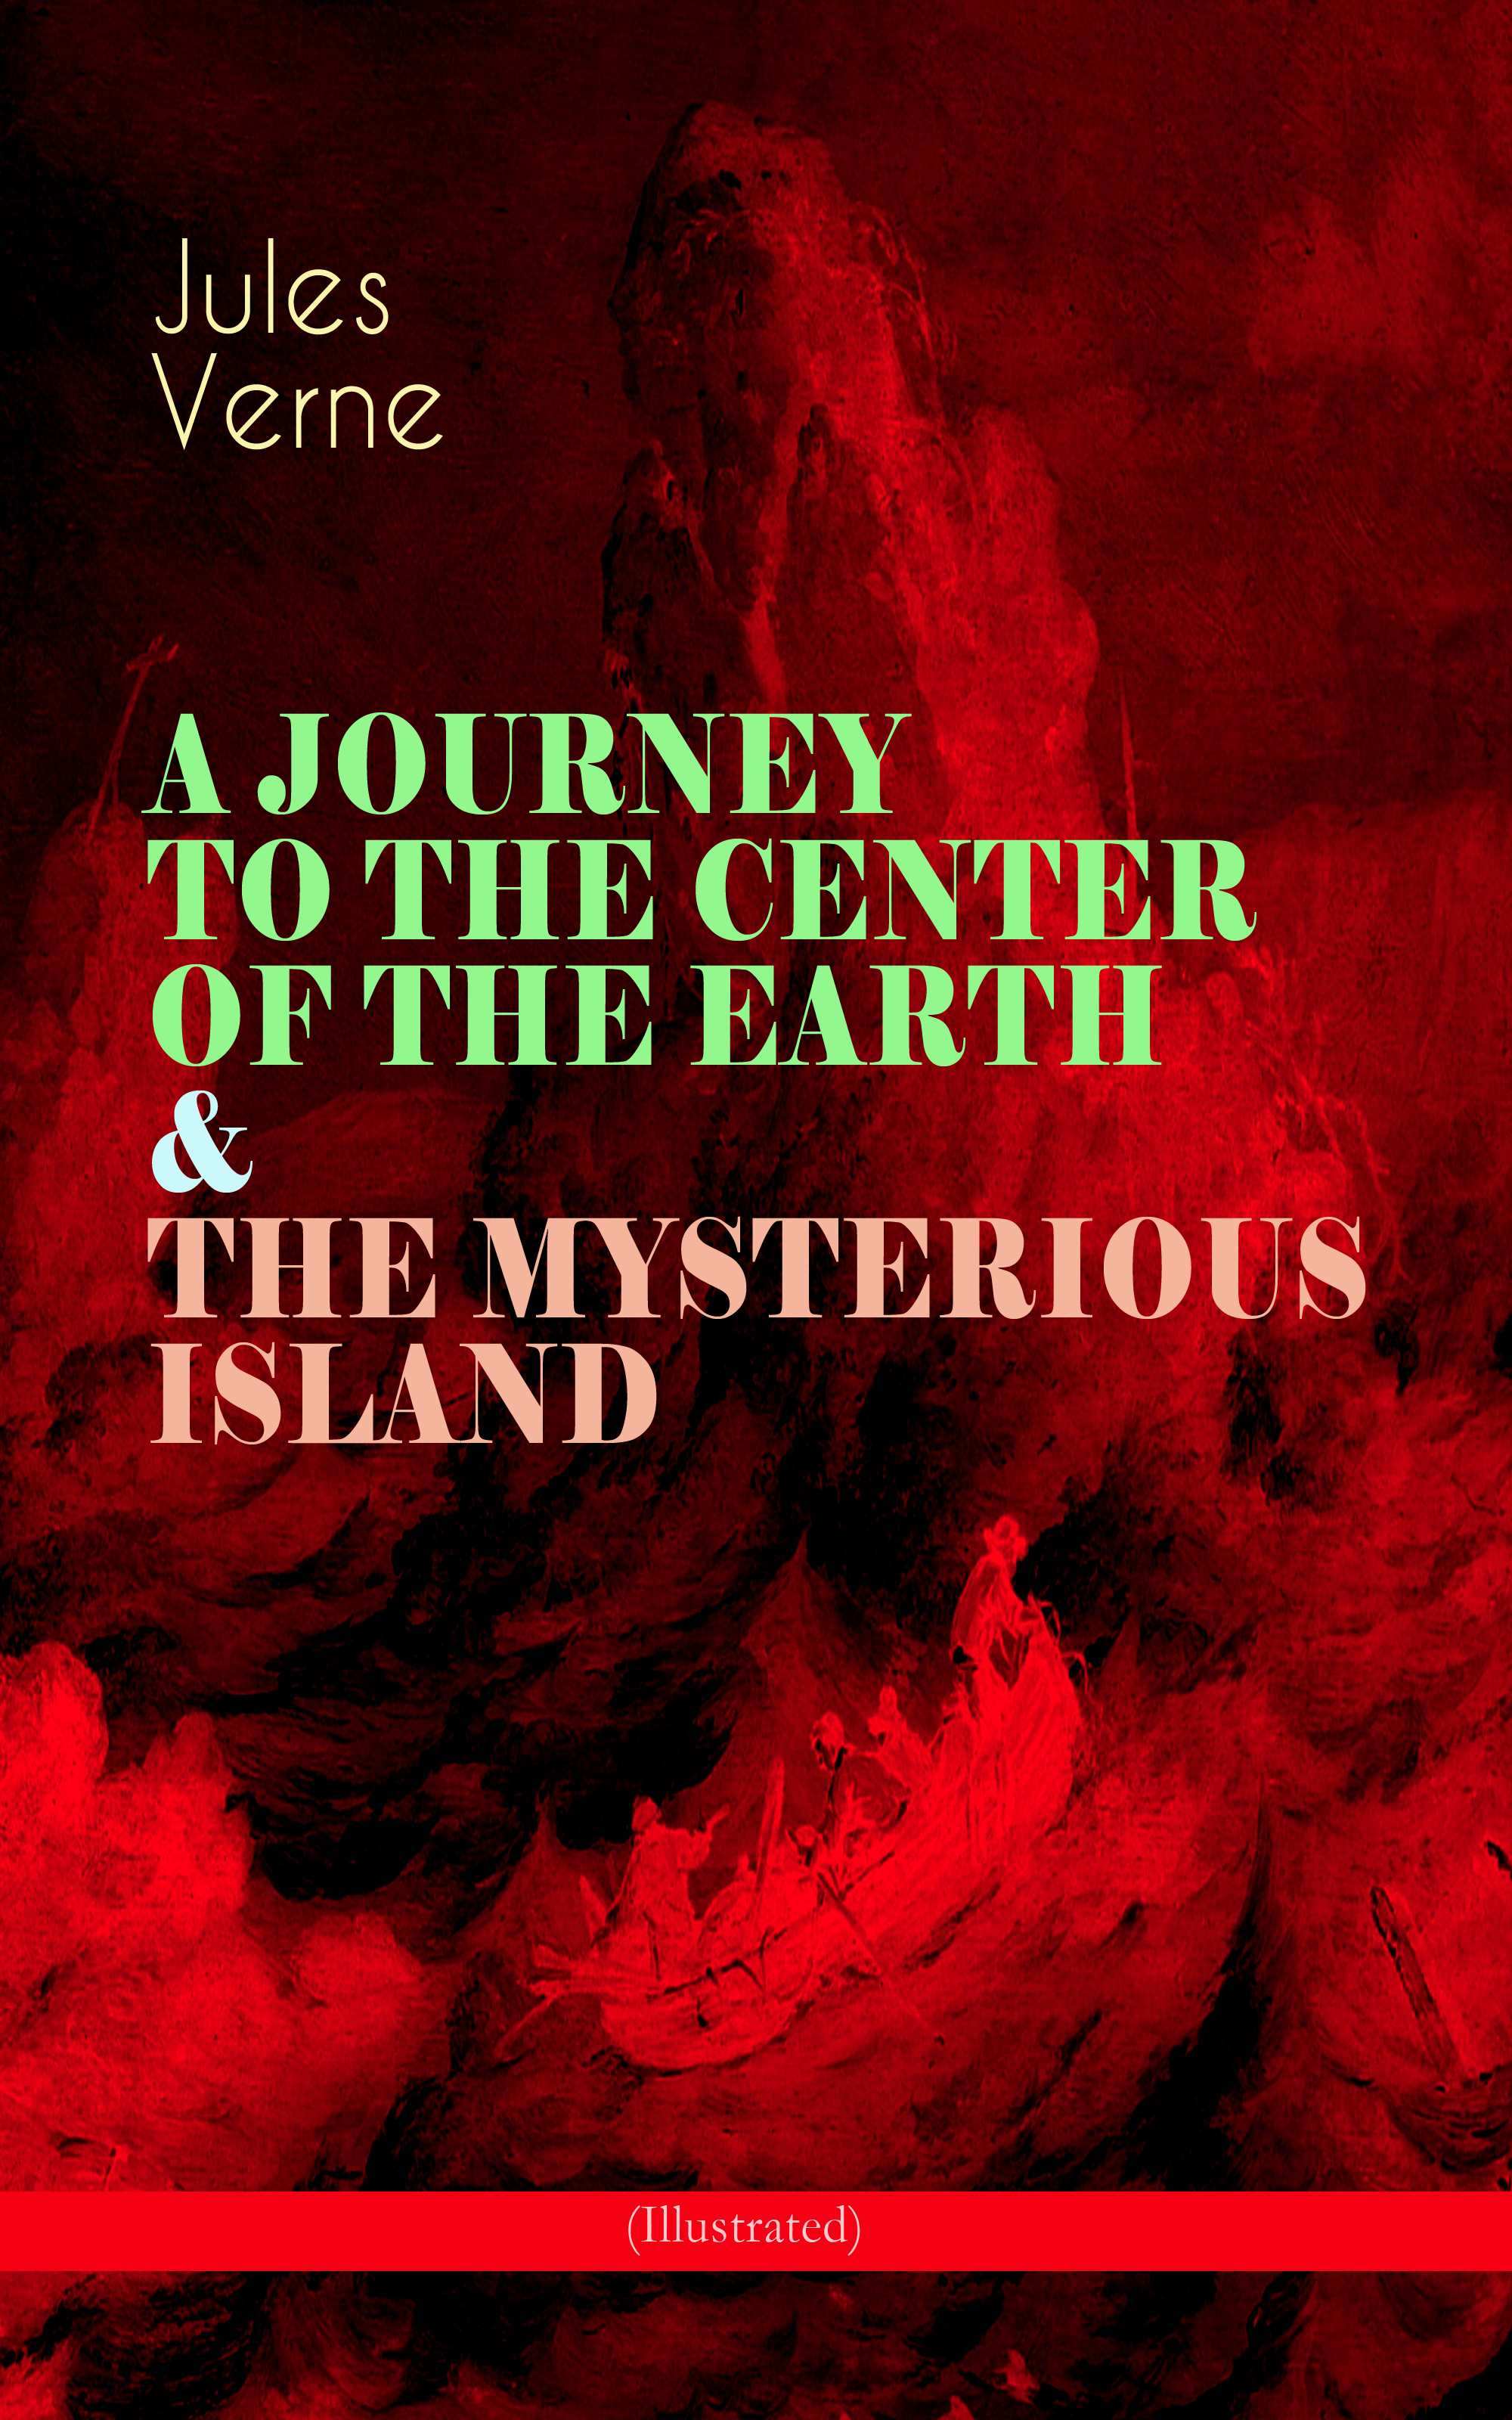 Jules Verne A JOURNEY TO THE CENTER OF EARTH & MYSTERIOUS ISLAND (Illustrated)